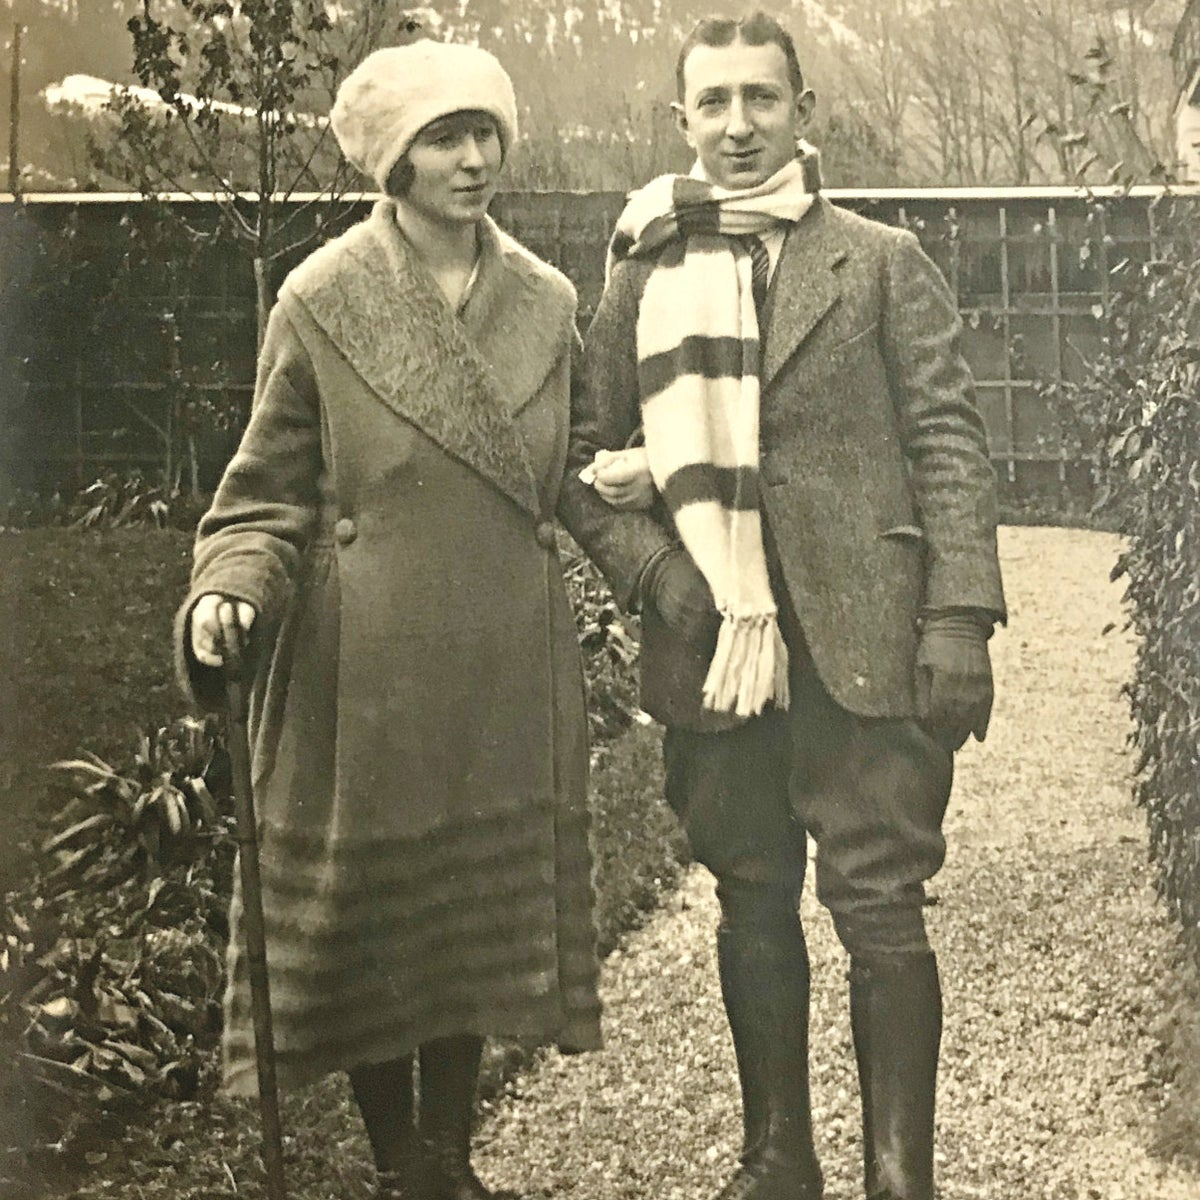 Georg and Charlotte Nomburg during an Alpine holiday, in the 1920s. Not long after, Georg's factory in Coburg went up in flames, and they were forced to leave town.